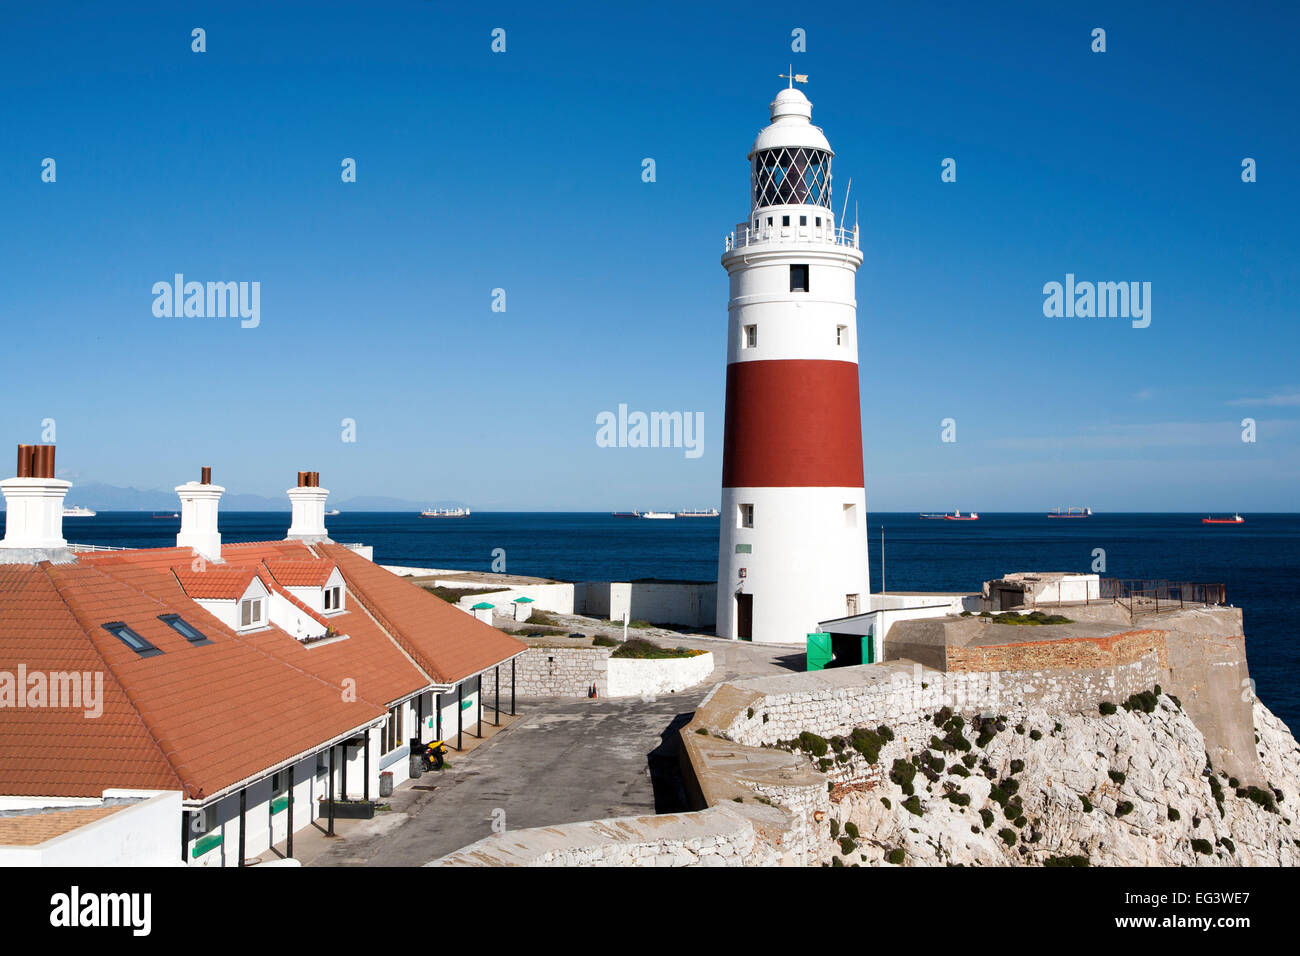 Red and white striped lighthouse at Europa Point, Gibraltar, British terroritory in southern Spain - Stock Image